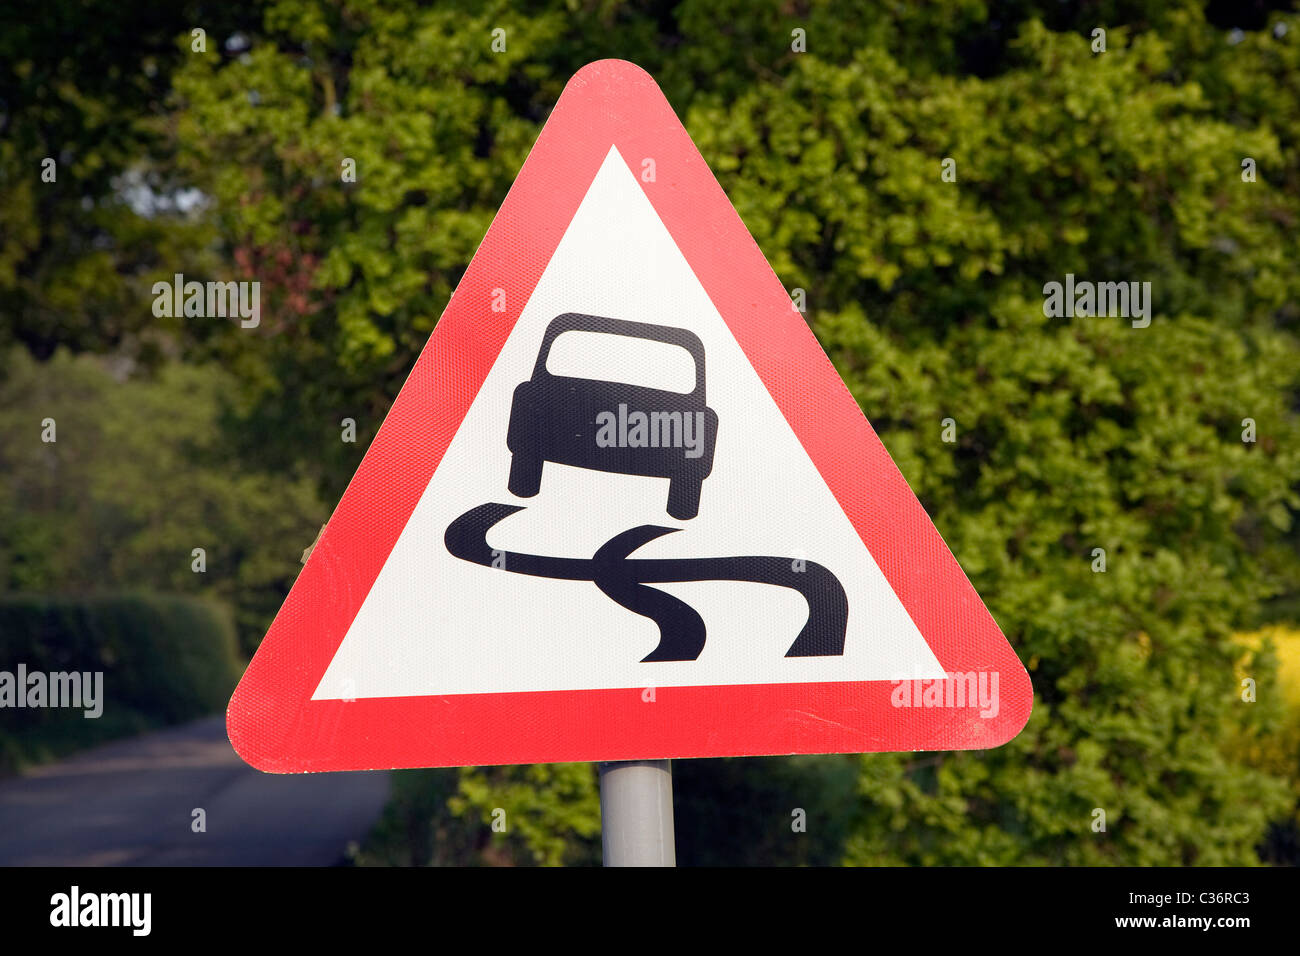 Red triangle road sign for risk of skidding - Stock Image